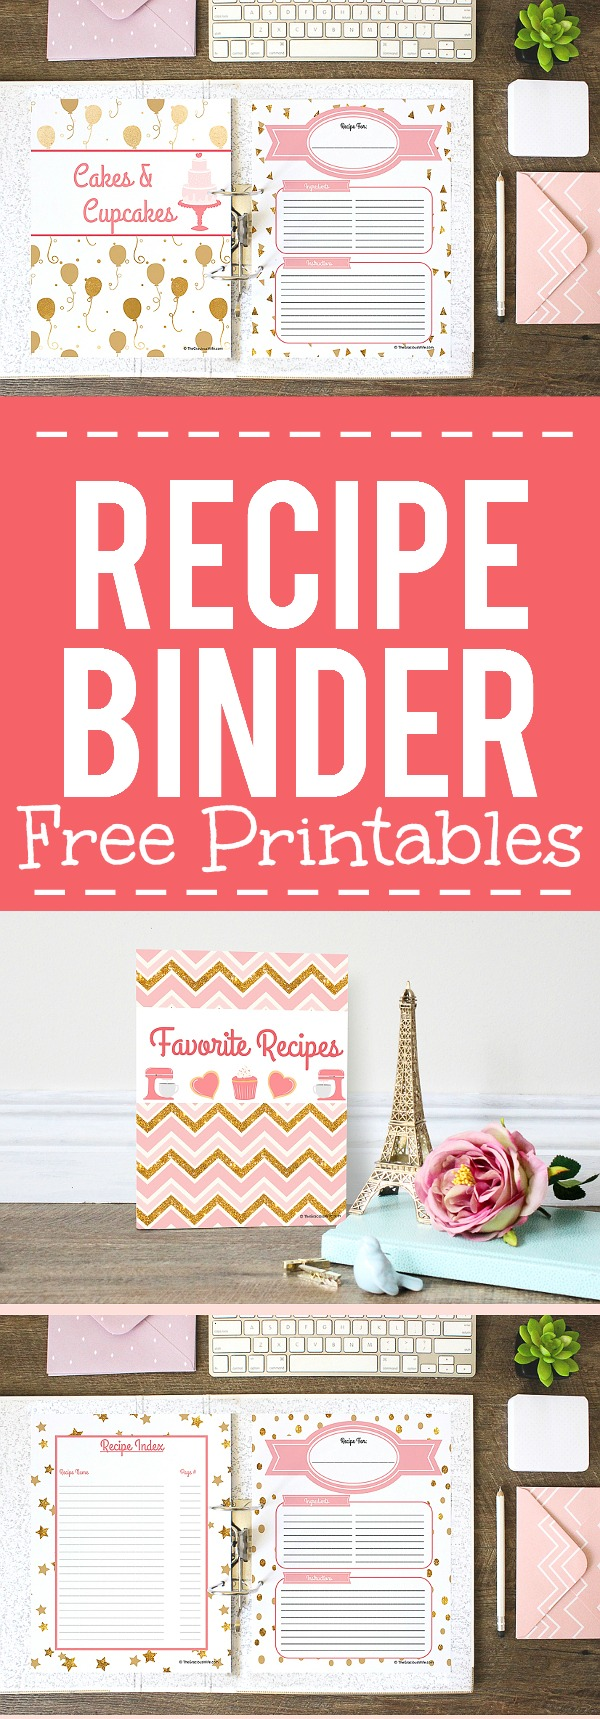 How to Make a Recipe Binder | FREE Recipe Binder Printables